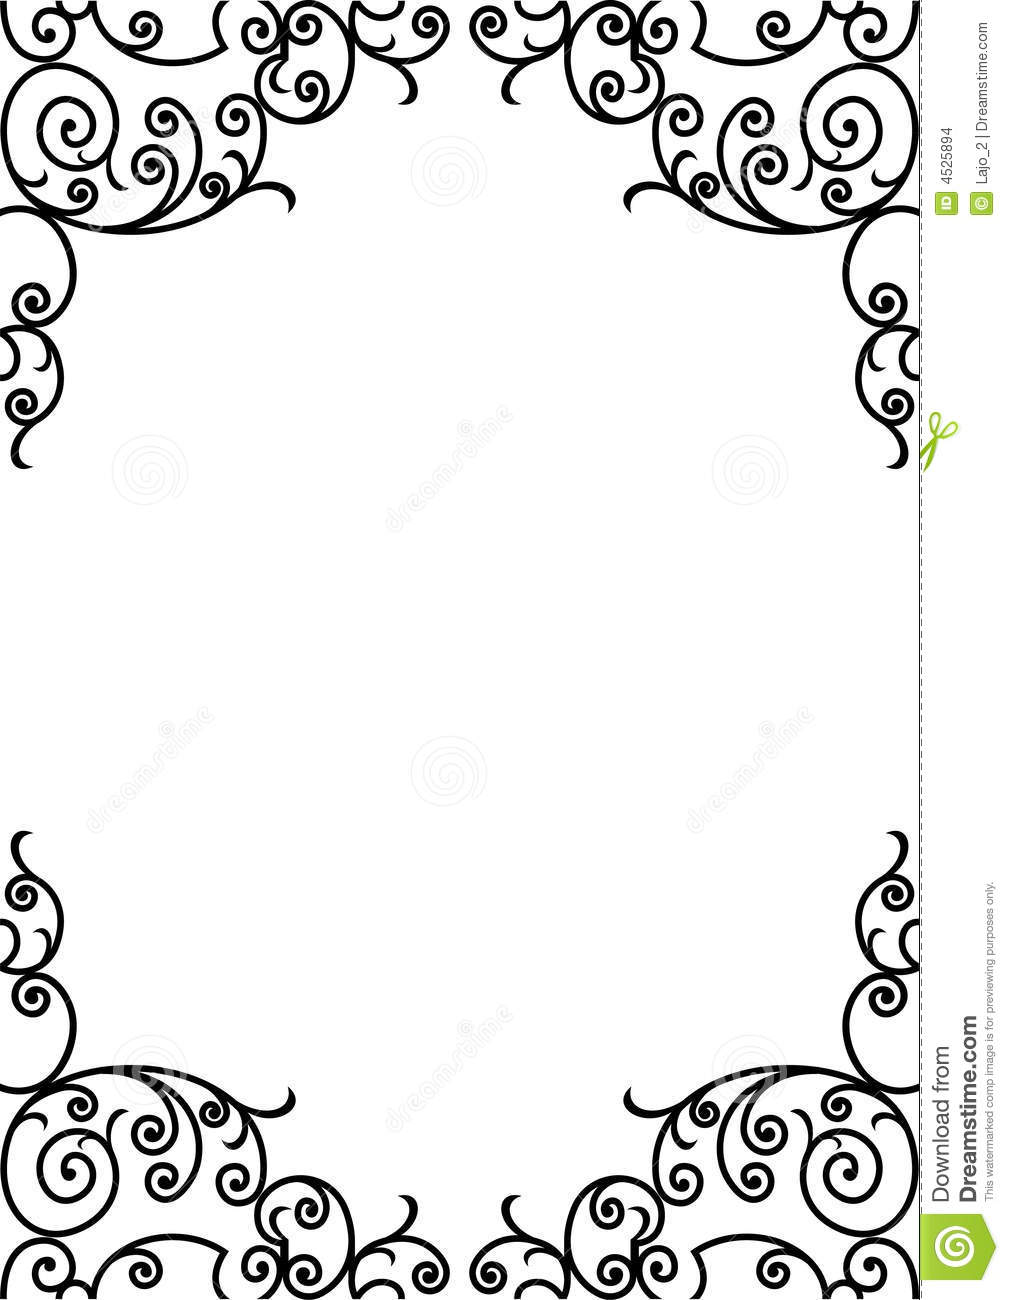 A4 Paper Border Designs For Projects decorative black and white border ...